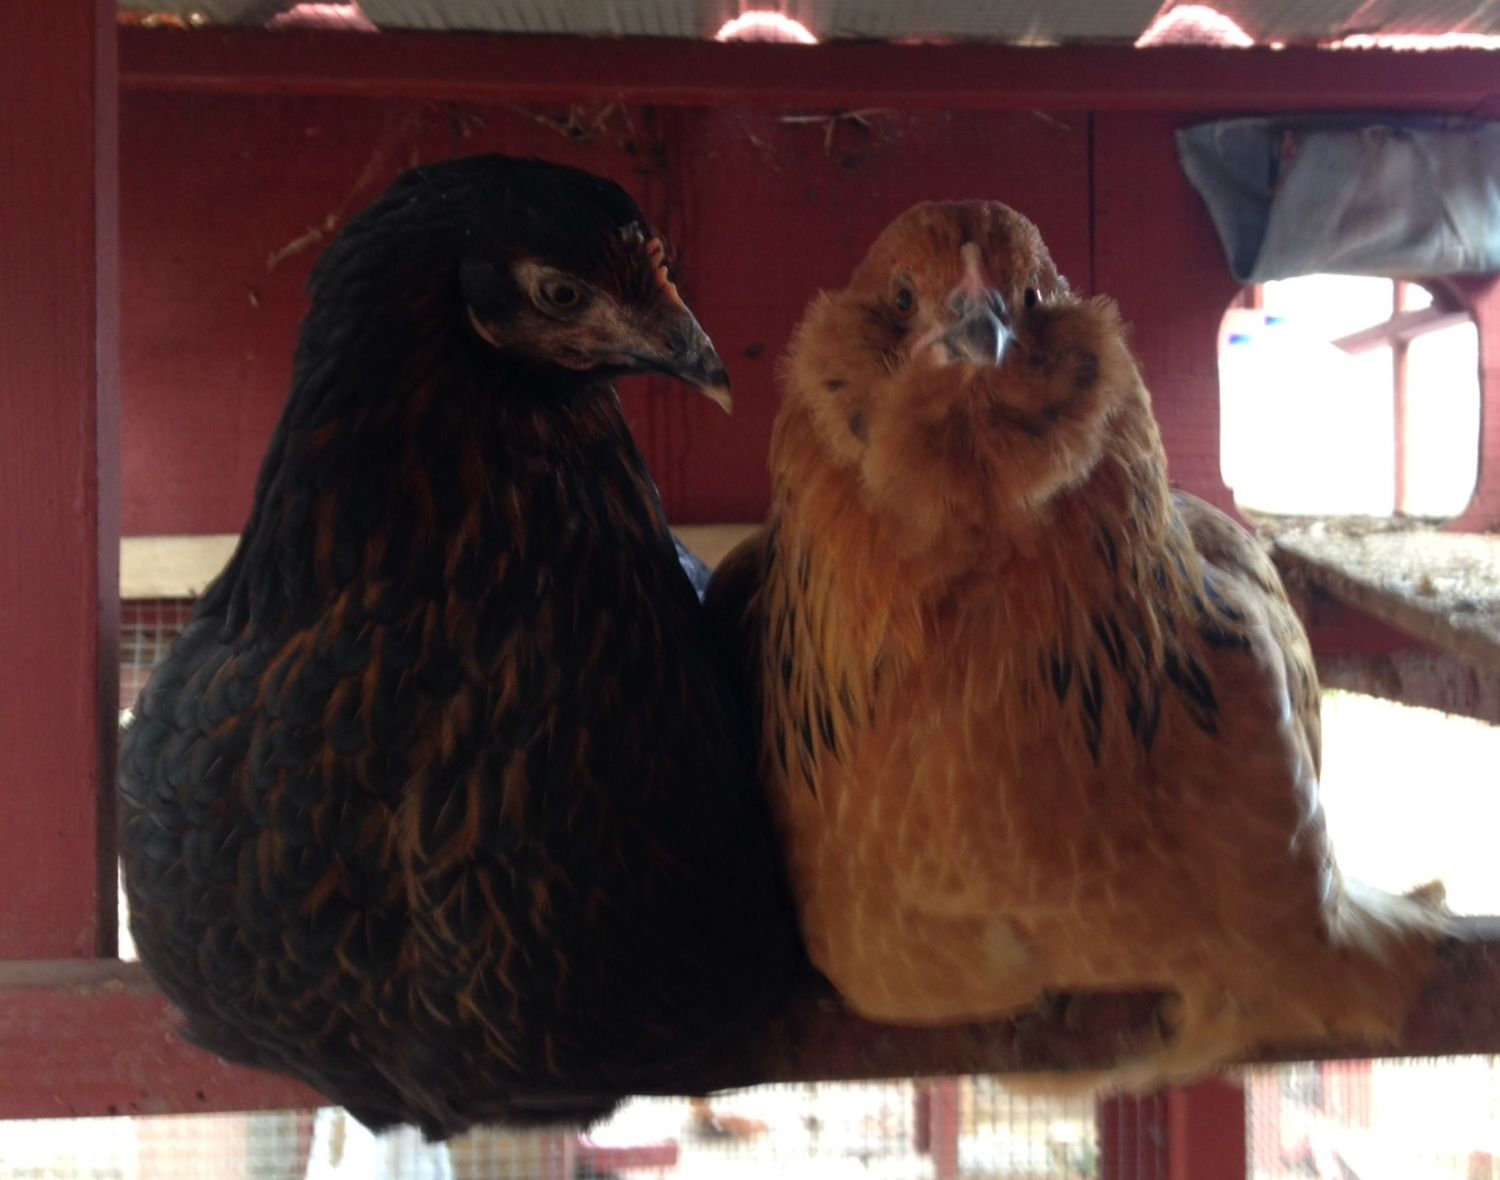 Residents 9 and 10: Phyllis Jr (black sex link) and Charlie the Easter Egger (she looks so funny so I named her Charlie). I got Charlie from a farmer in exchange for Aztec the rooster (aka Tio, who was supposed to be Tia...) and she was too small to integrate into the flock. The flock was mean to her and she was terrified. I had to keep her in separate quarters until she was full-grown. She was lonely in her separate coop/run, so I got her a friend....this black sex link of the same age.